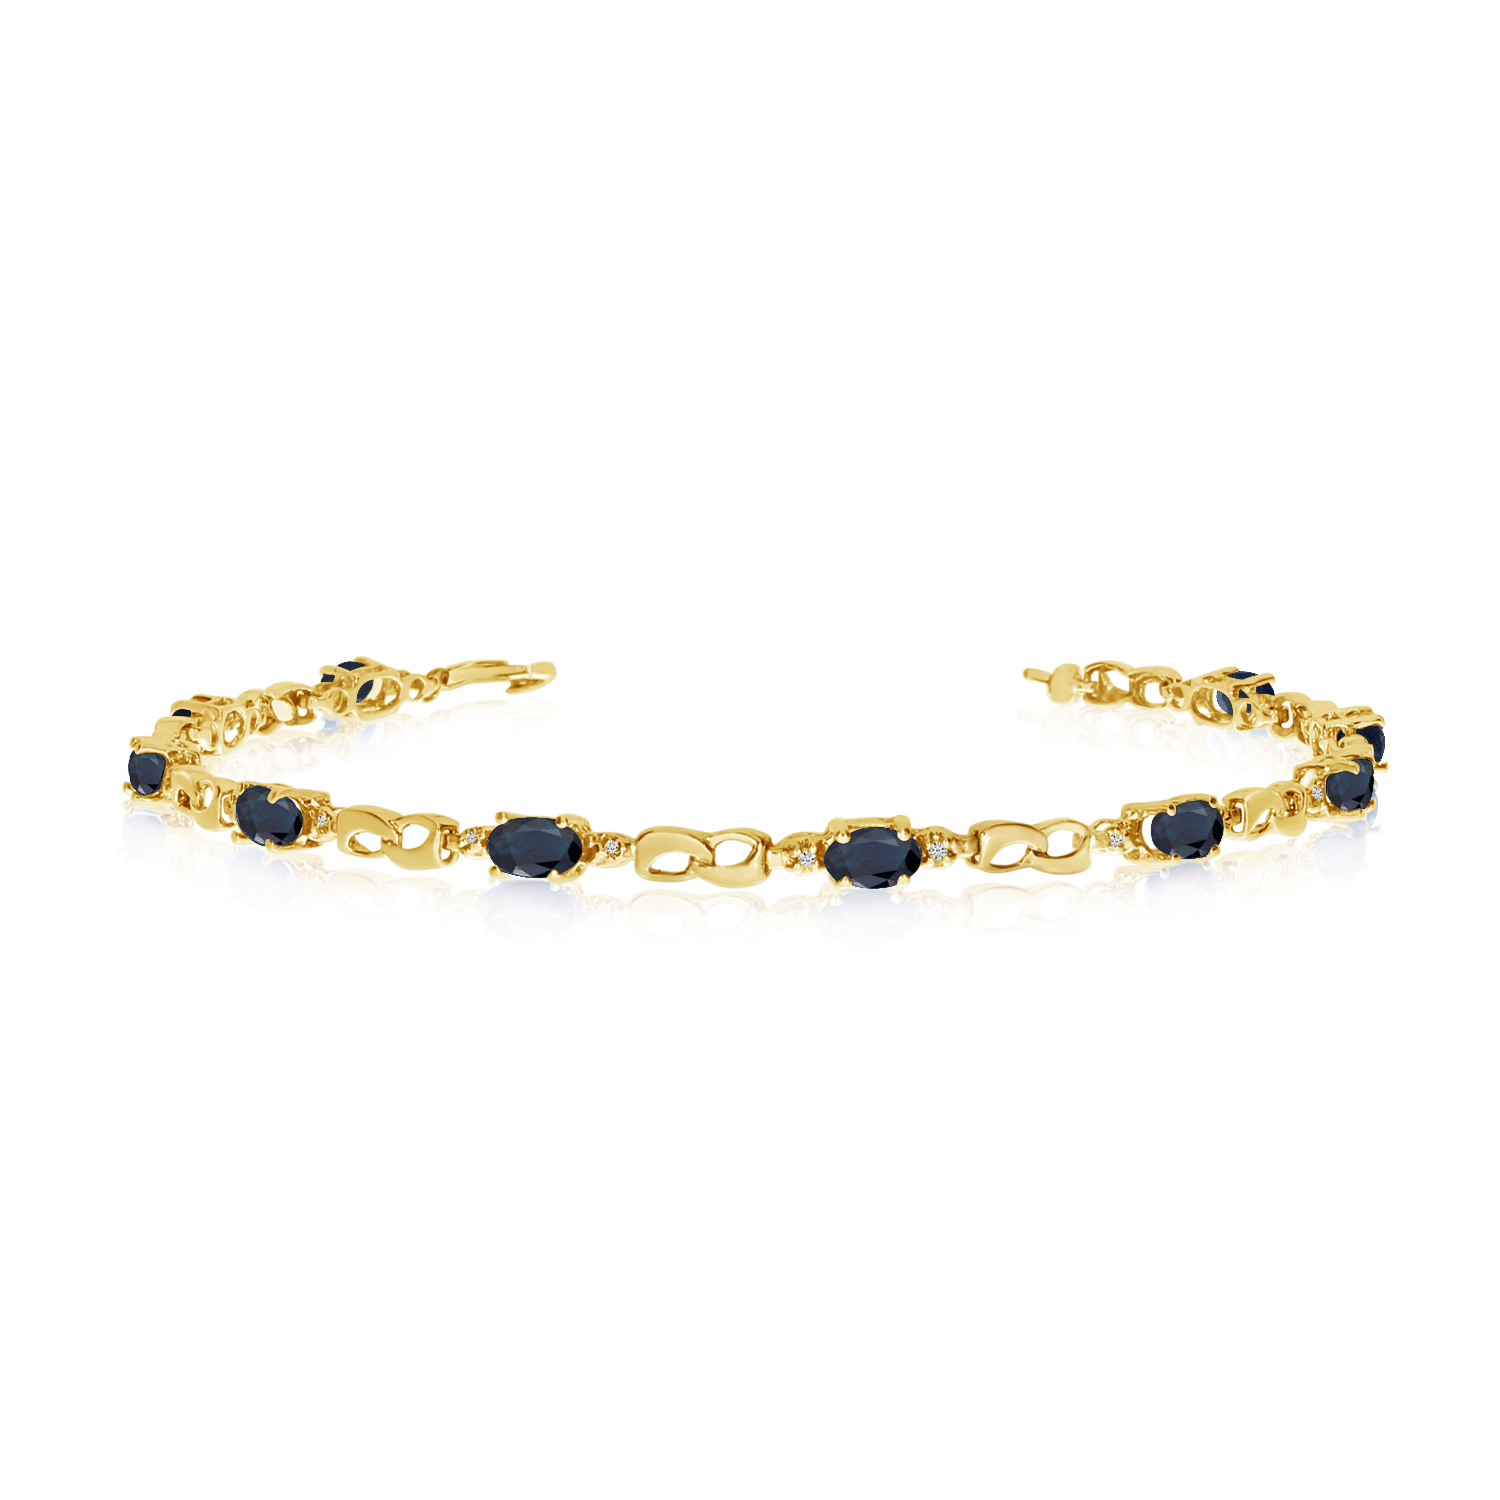 10K Yellow Gold Oval Sapphire and Diamond Link Bracelet by